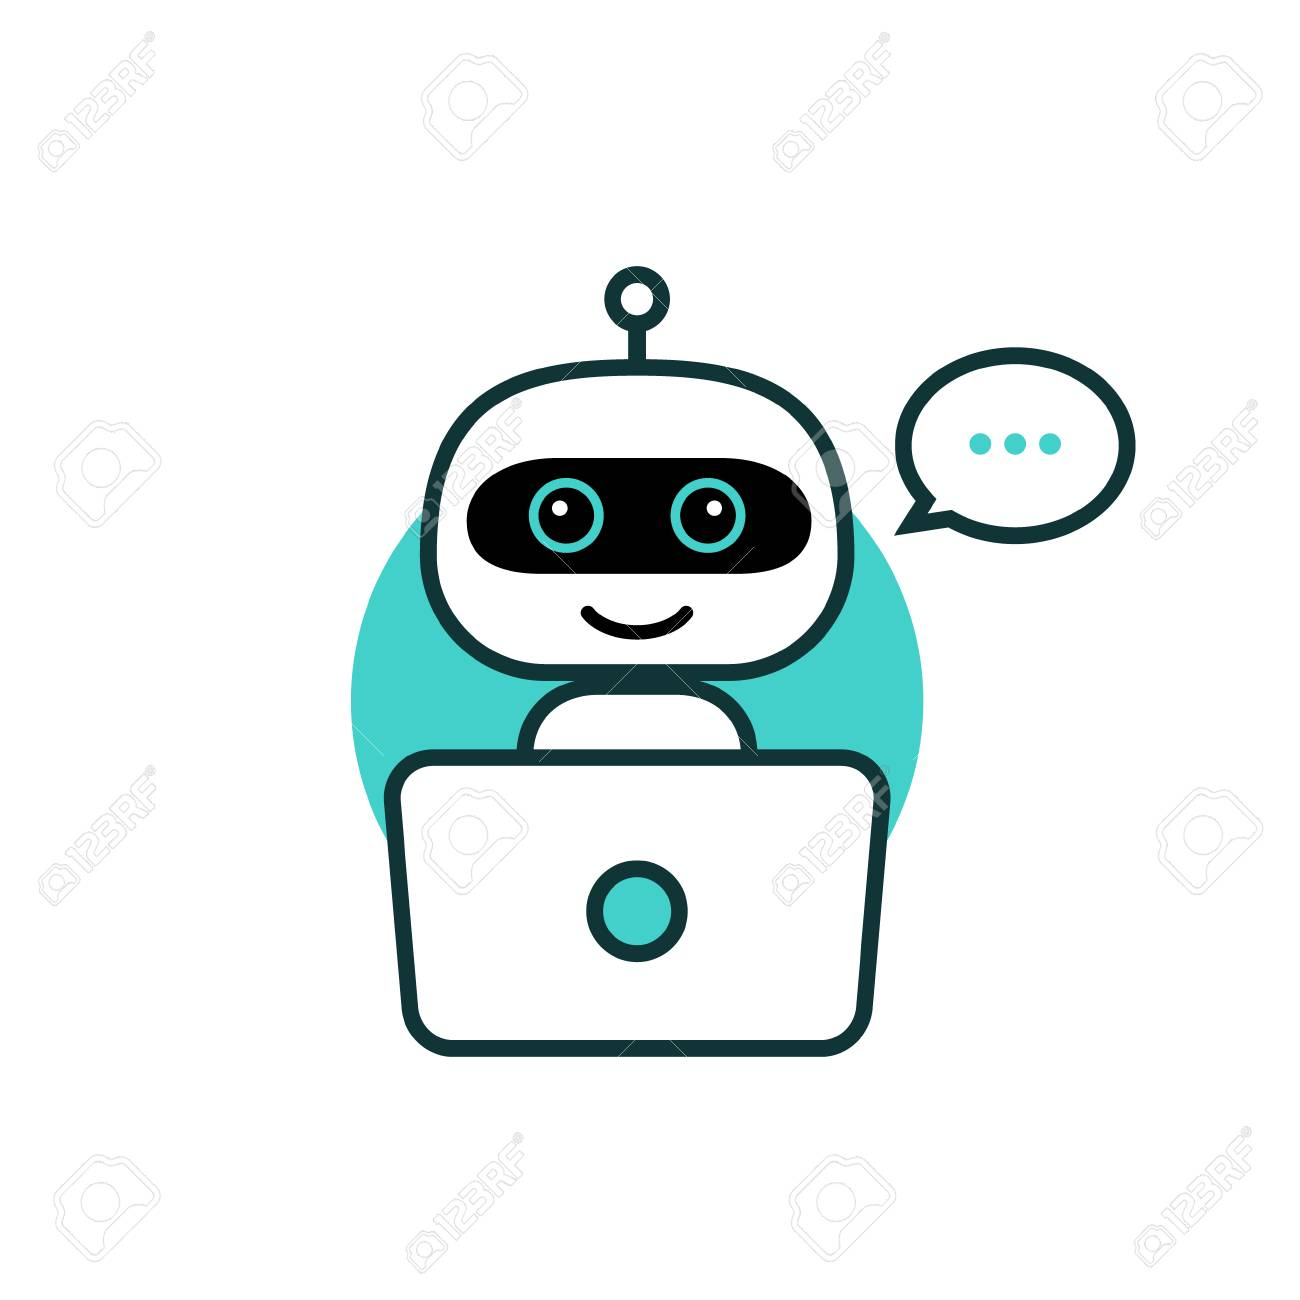 Robot Icon Chat Bot Sign For Support Service Concept Chatbot Royalty Free Cliparts Vectors And Stock Illustration Image 116377855 You have come to the right place! robot icon chat bot sign for support service concept chatbot